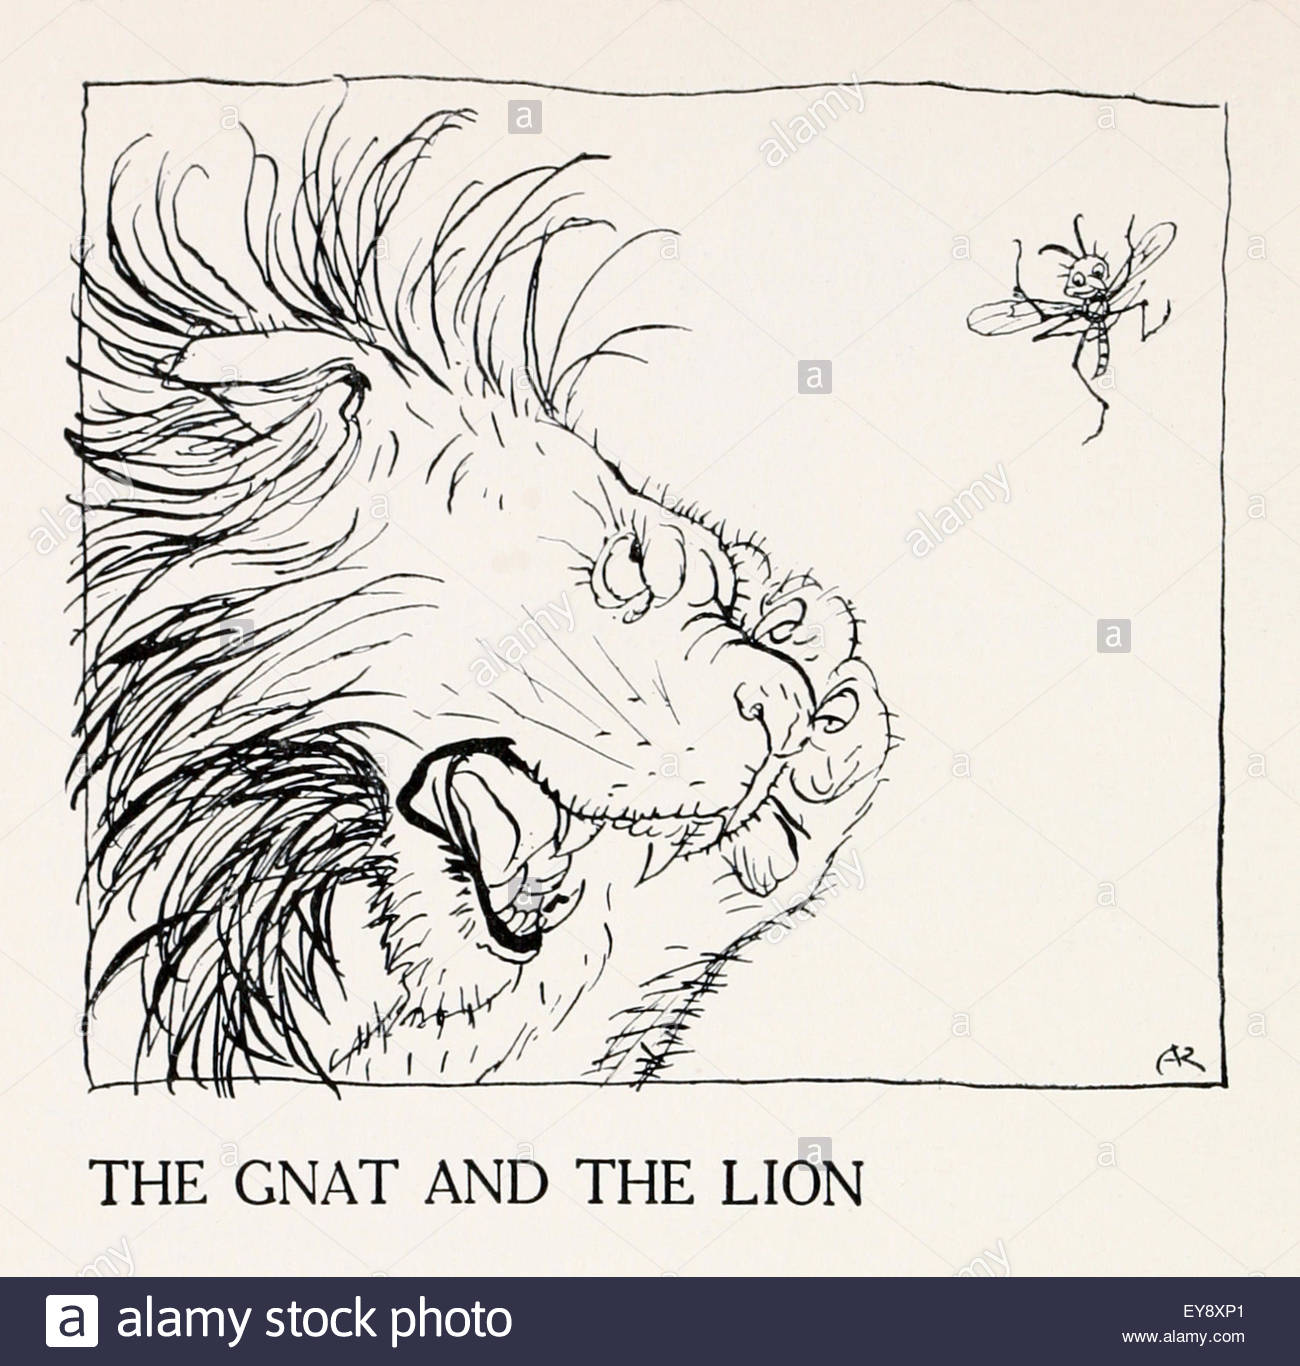 1300x1366 The Gnat And The Lion' Fable By Aesop (Circa 600bc). Illustration